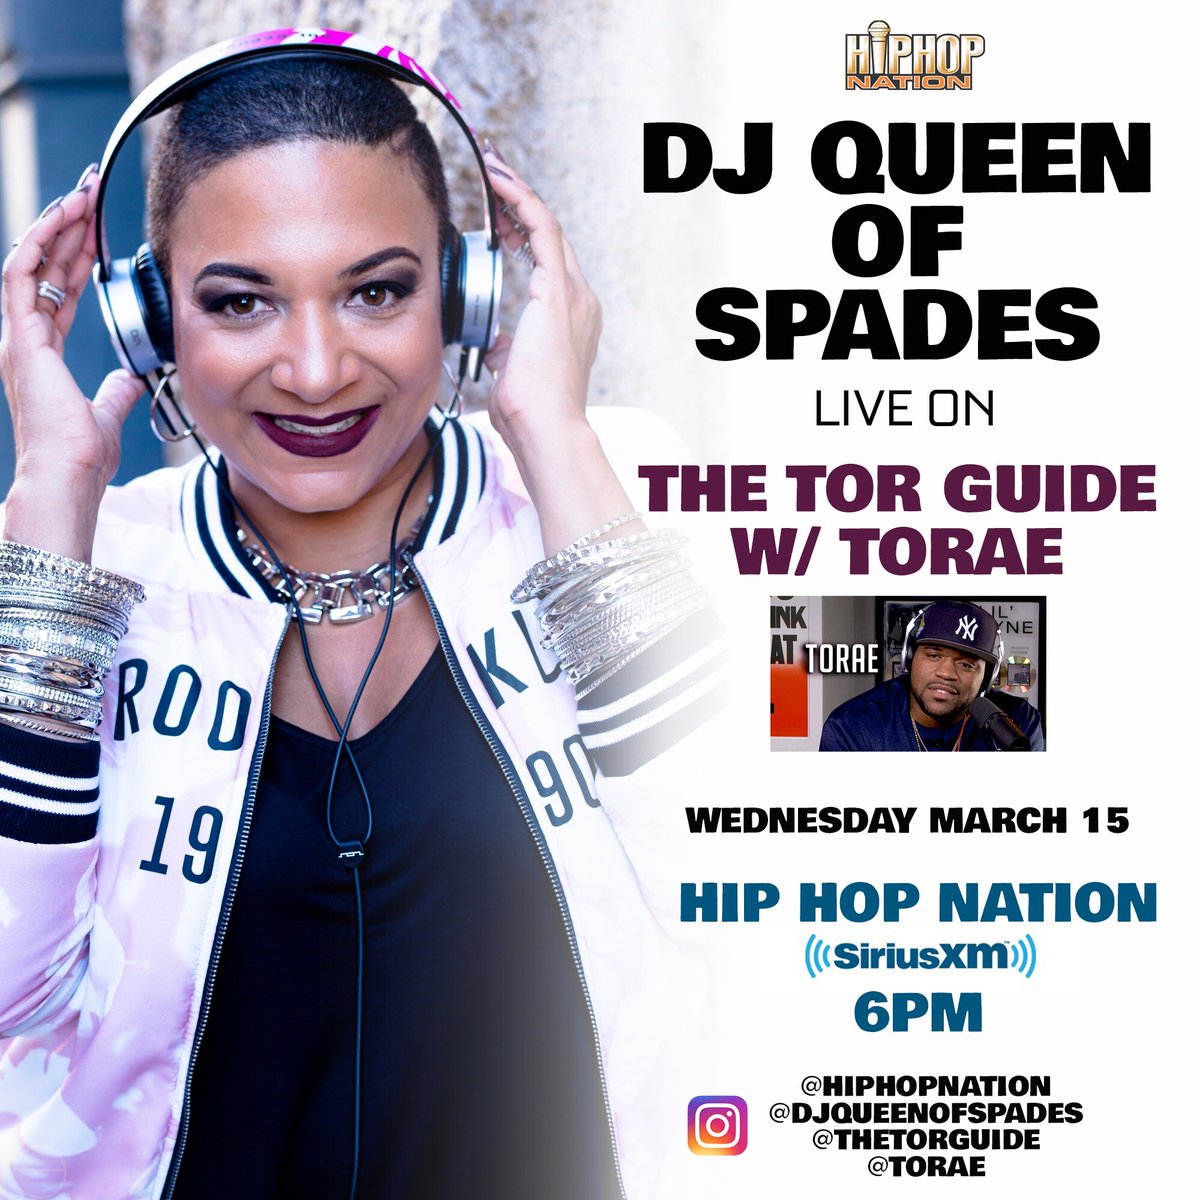 Lock it in today at 6pm to @HipHopNation SiriusXM 44, as I take over for the #WCW mix on The Tor Guide w/ @Torae! https://t.co/GSMIYgL64a